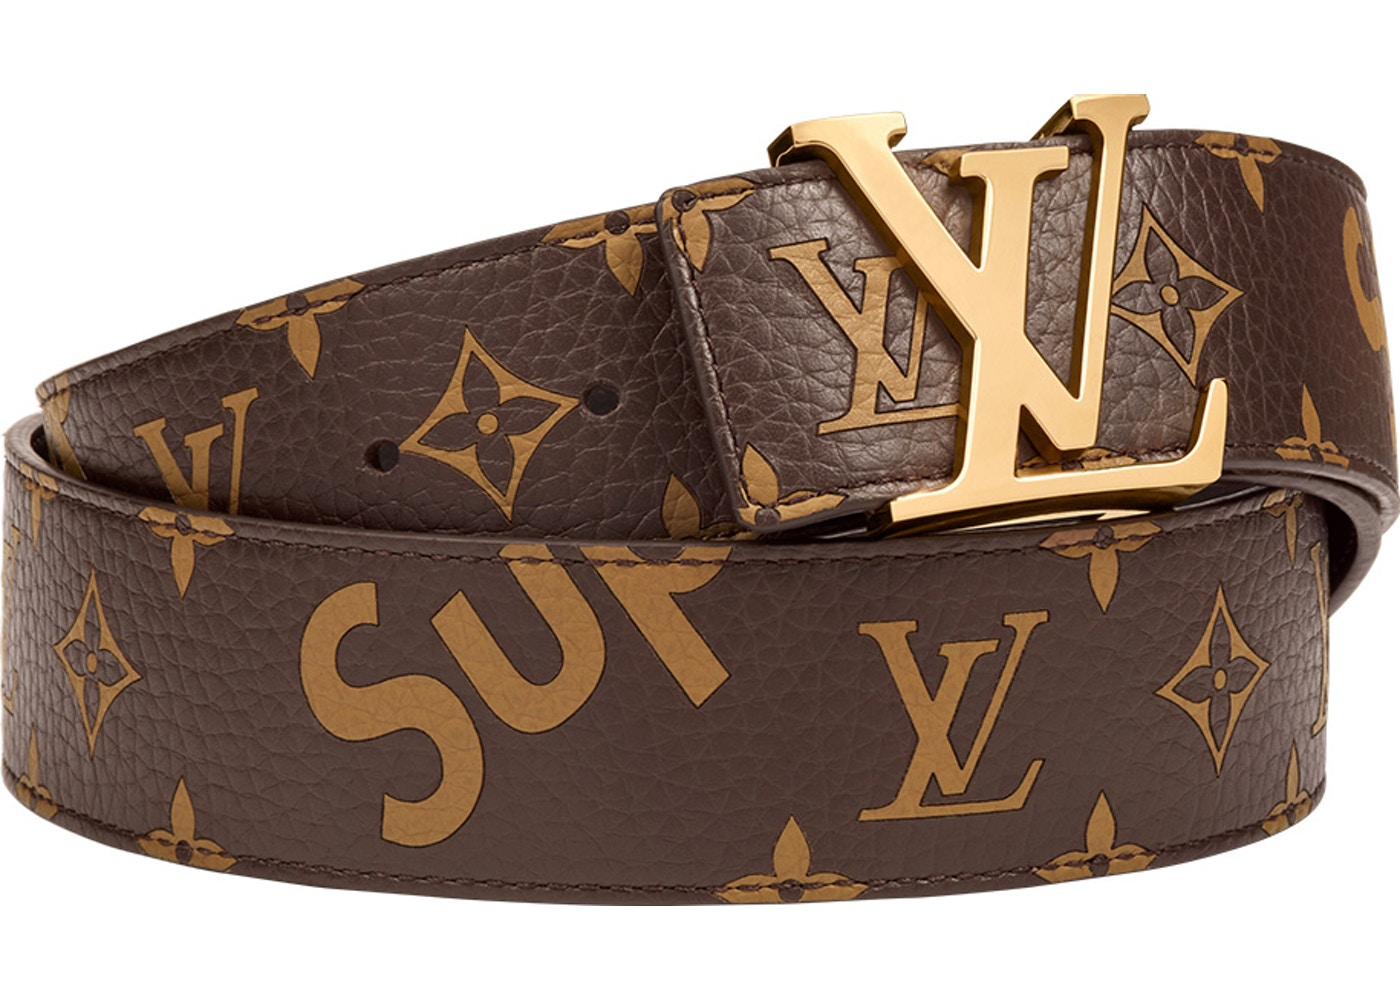 90119162e194 Louis Vuitton x Supreme Initiales Belt 40 MM Monogram Brown Gold